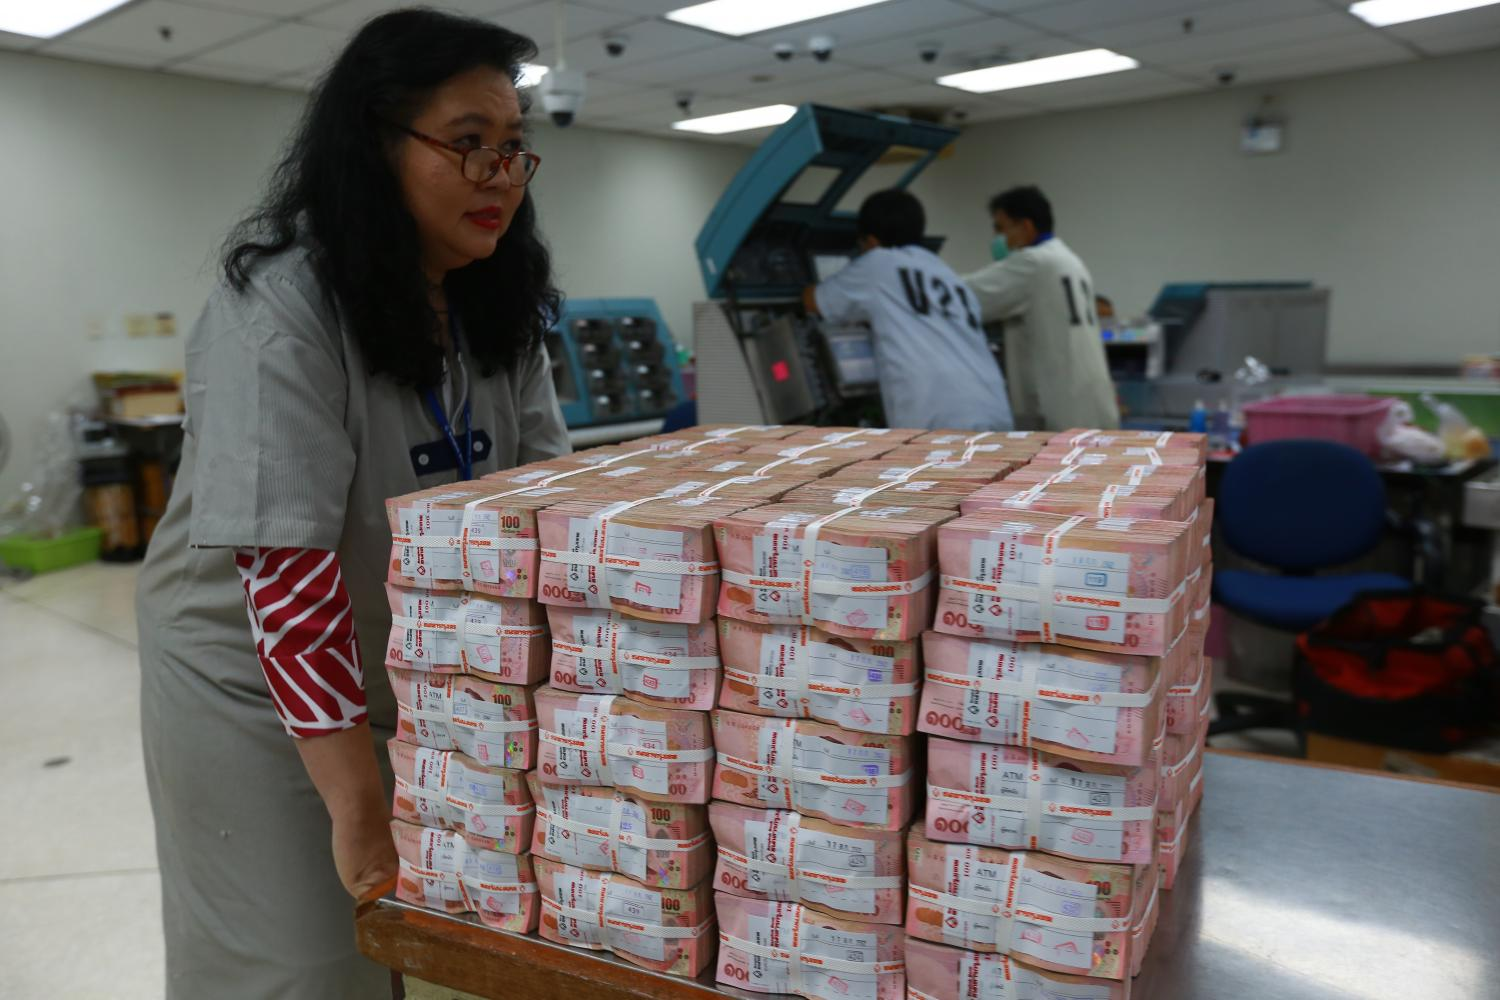 A woman gathers banknotes at Bangkok Bank's headquarters on Silom Road. The baht has appreciated significantly following the US presidential election.(Photo by Somchai Poomlard)